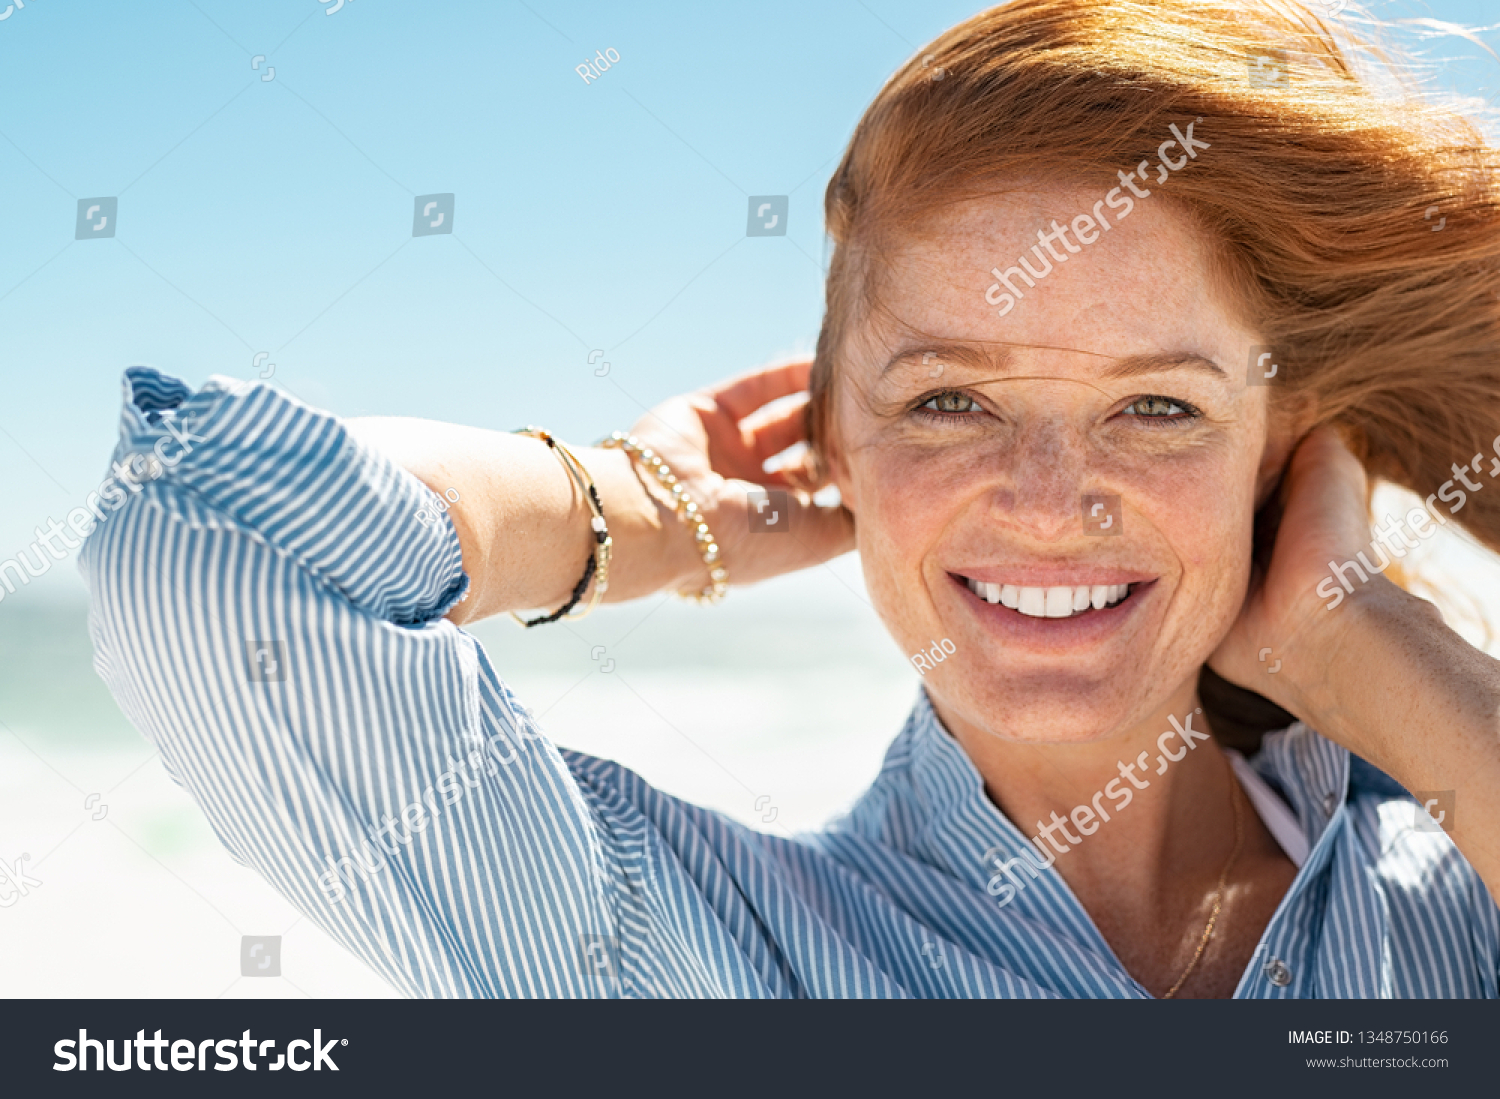 Portrait of beautiful mature woman with wind fluttering hair. Closeup face of healthy young woman with freckles looking at camera. Lady with red hair standing at seaside enjoying breeze at beach. #1348750166